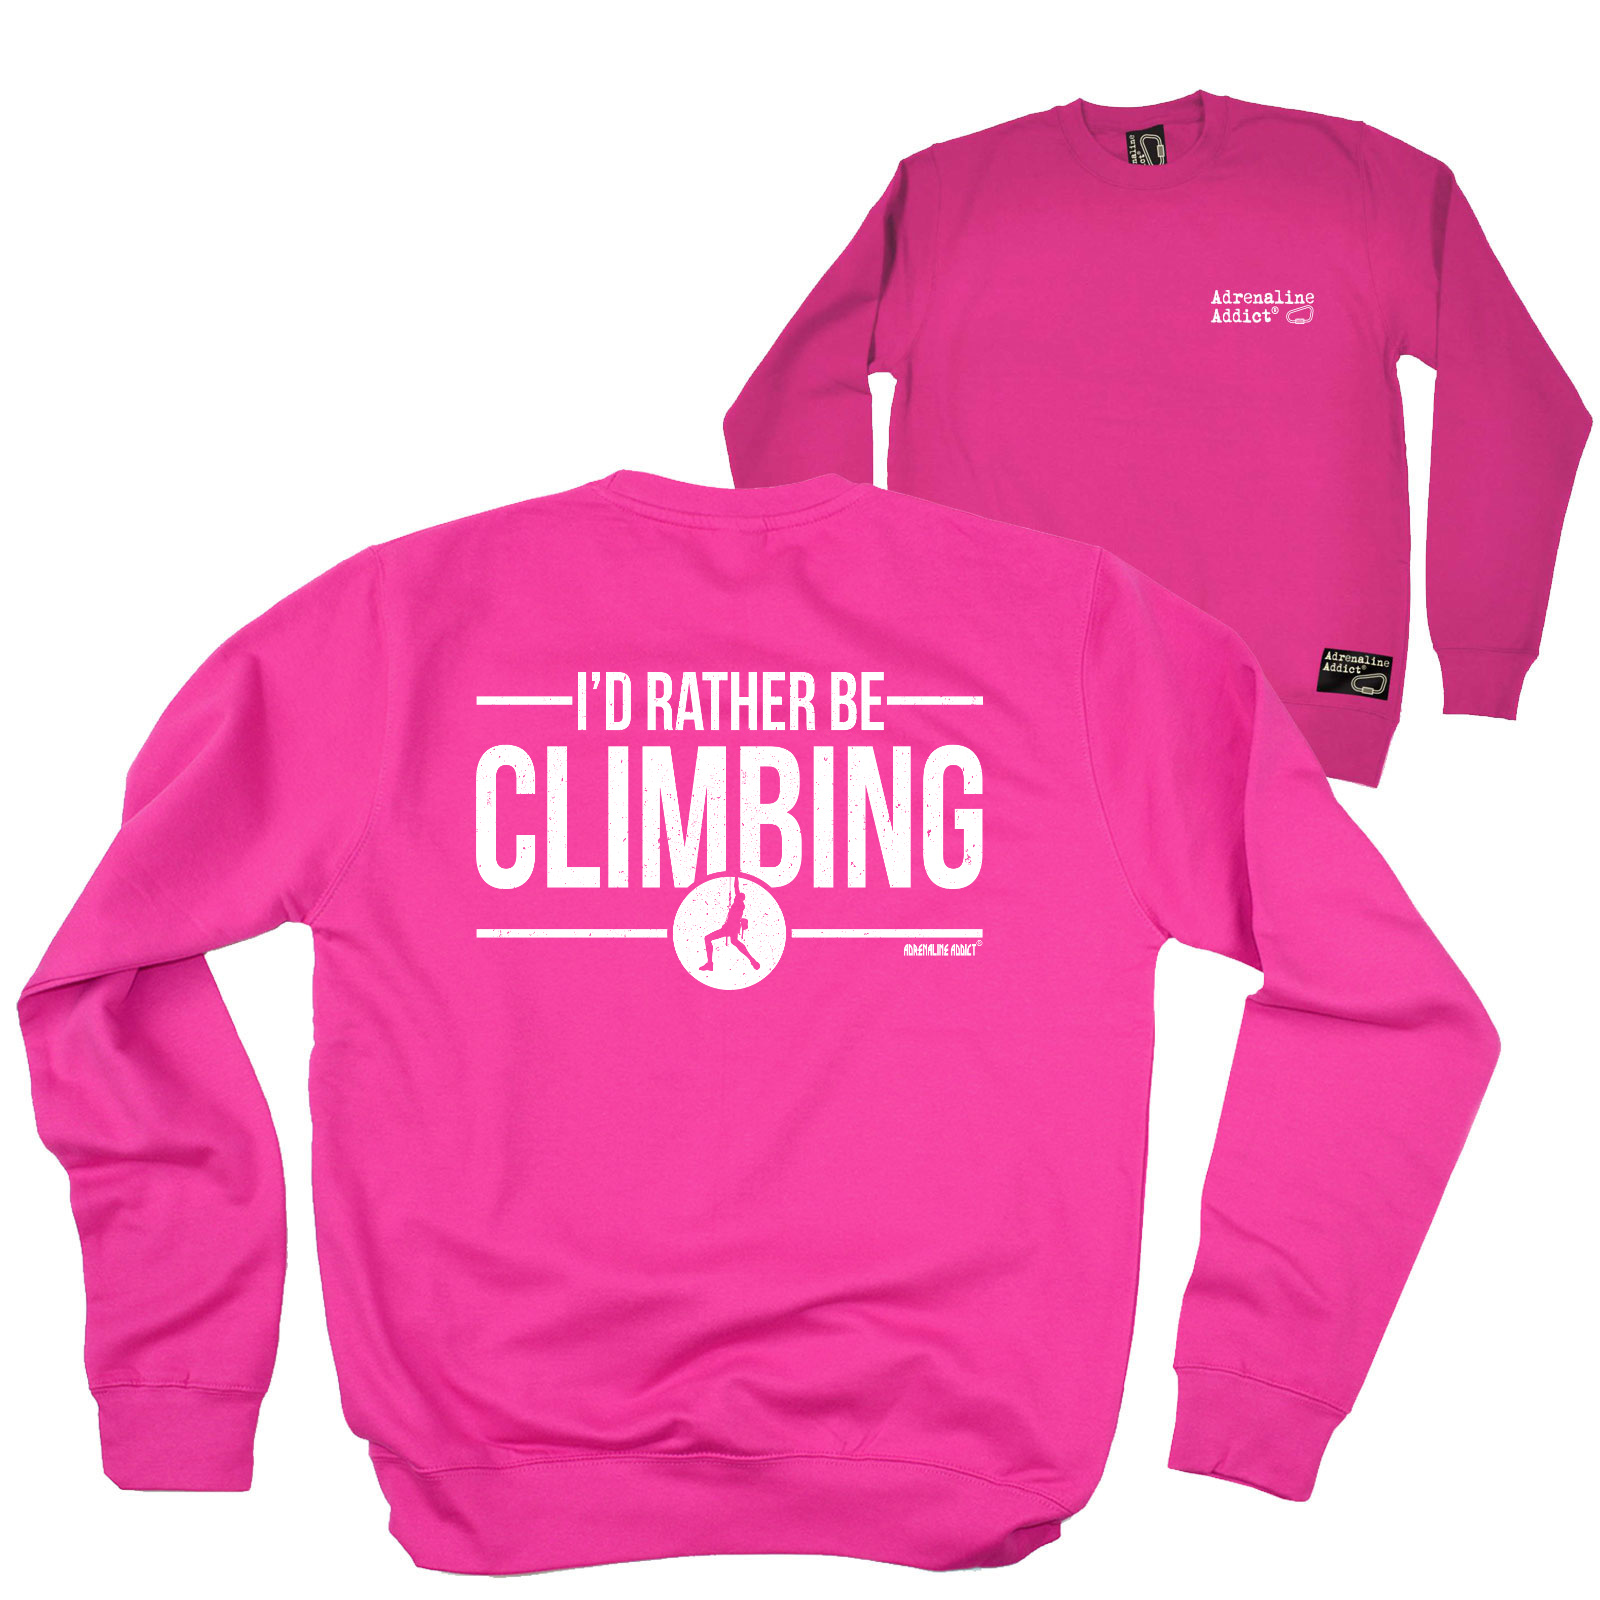 Yours Clothing Women/'s Plus Size Neon Pink /'all About Me/' Slogan Sweatshirt